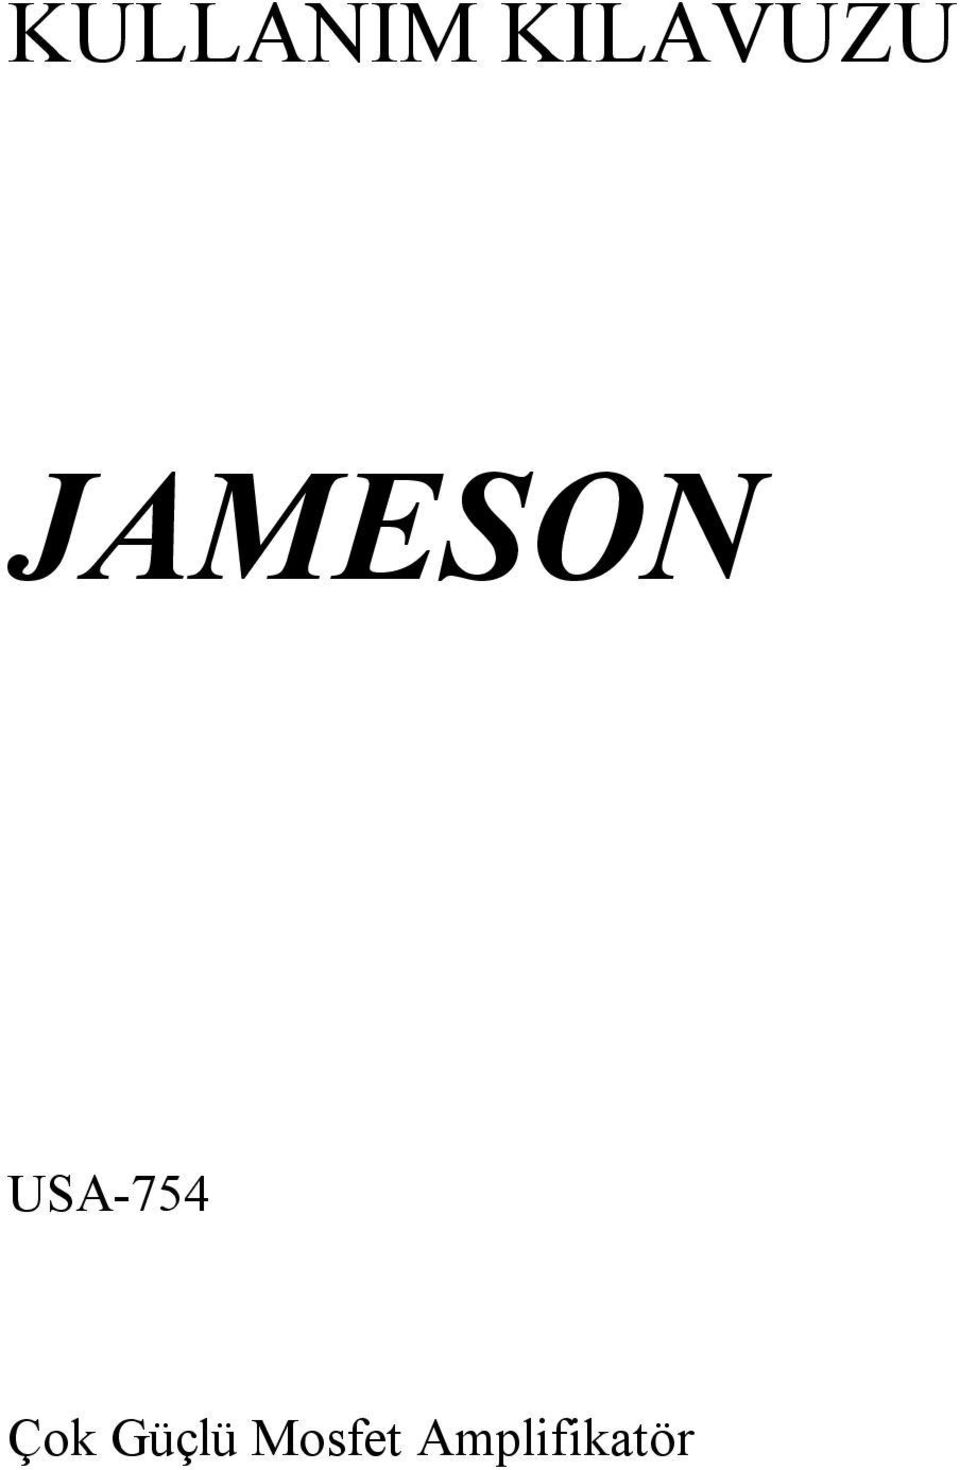 JAMESON USA-754